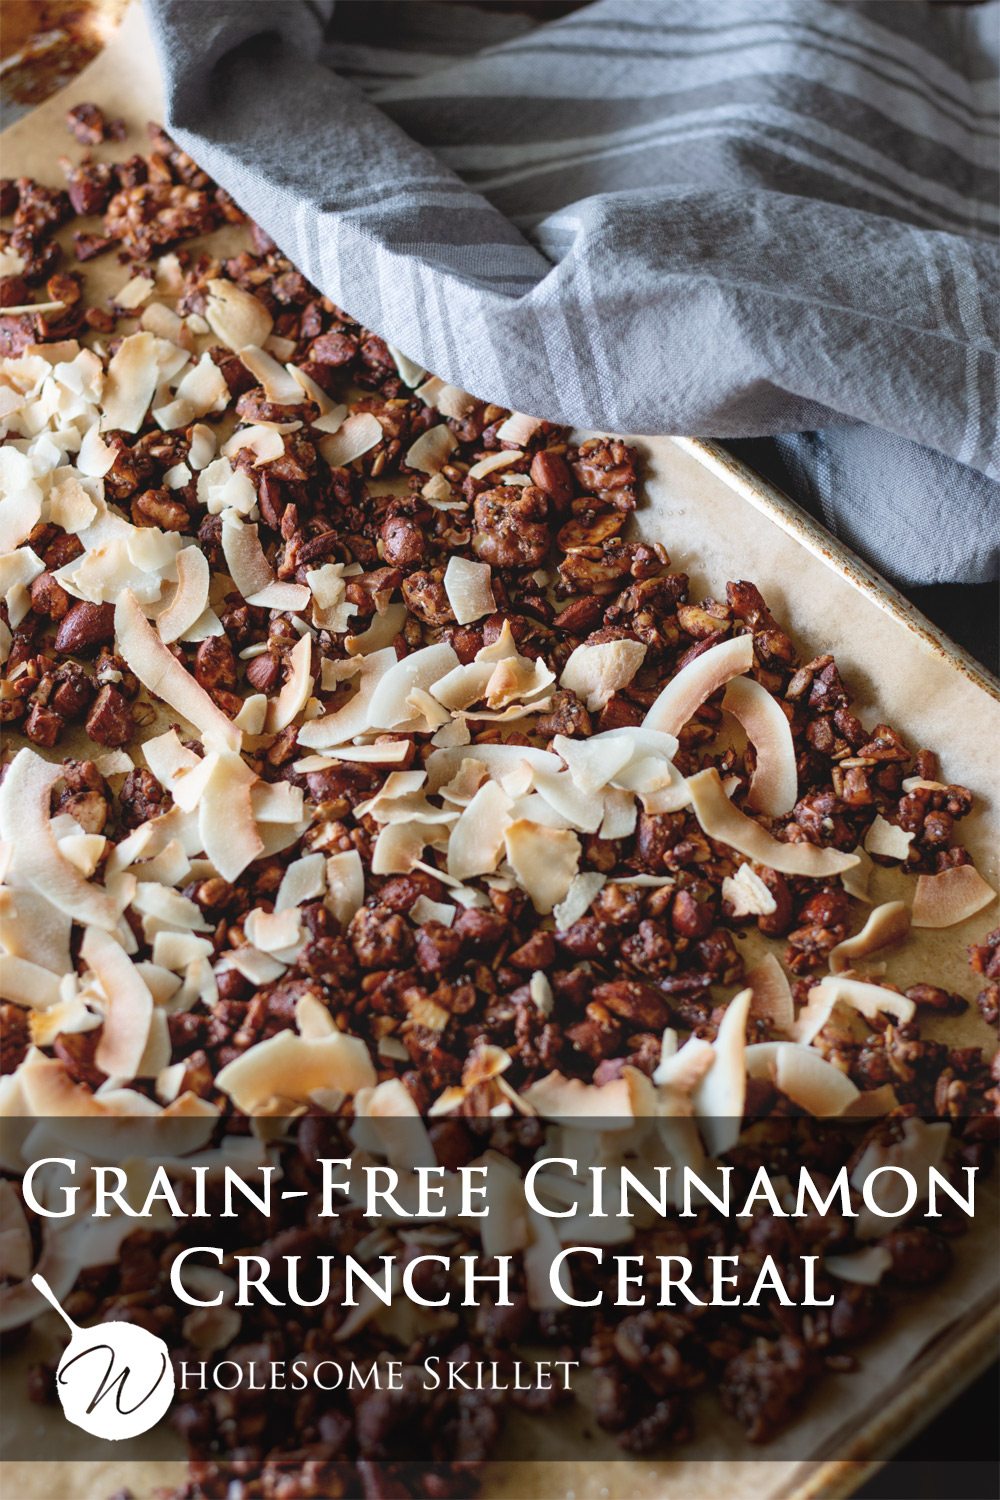 Cinnamon Coconut Crunch Cereal | Wholesome Skillet